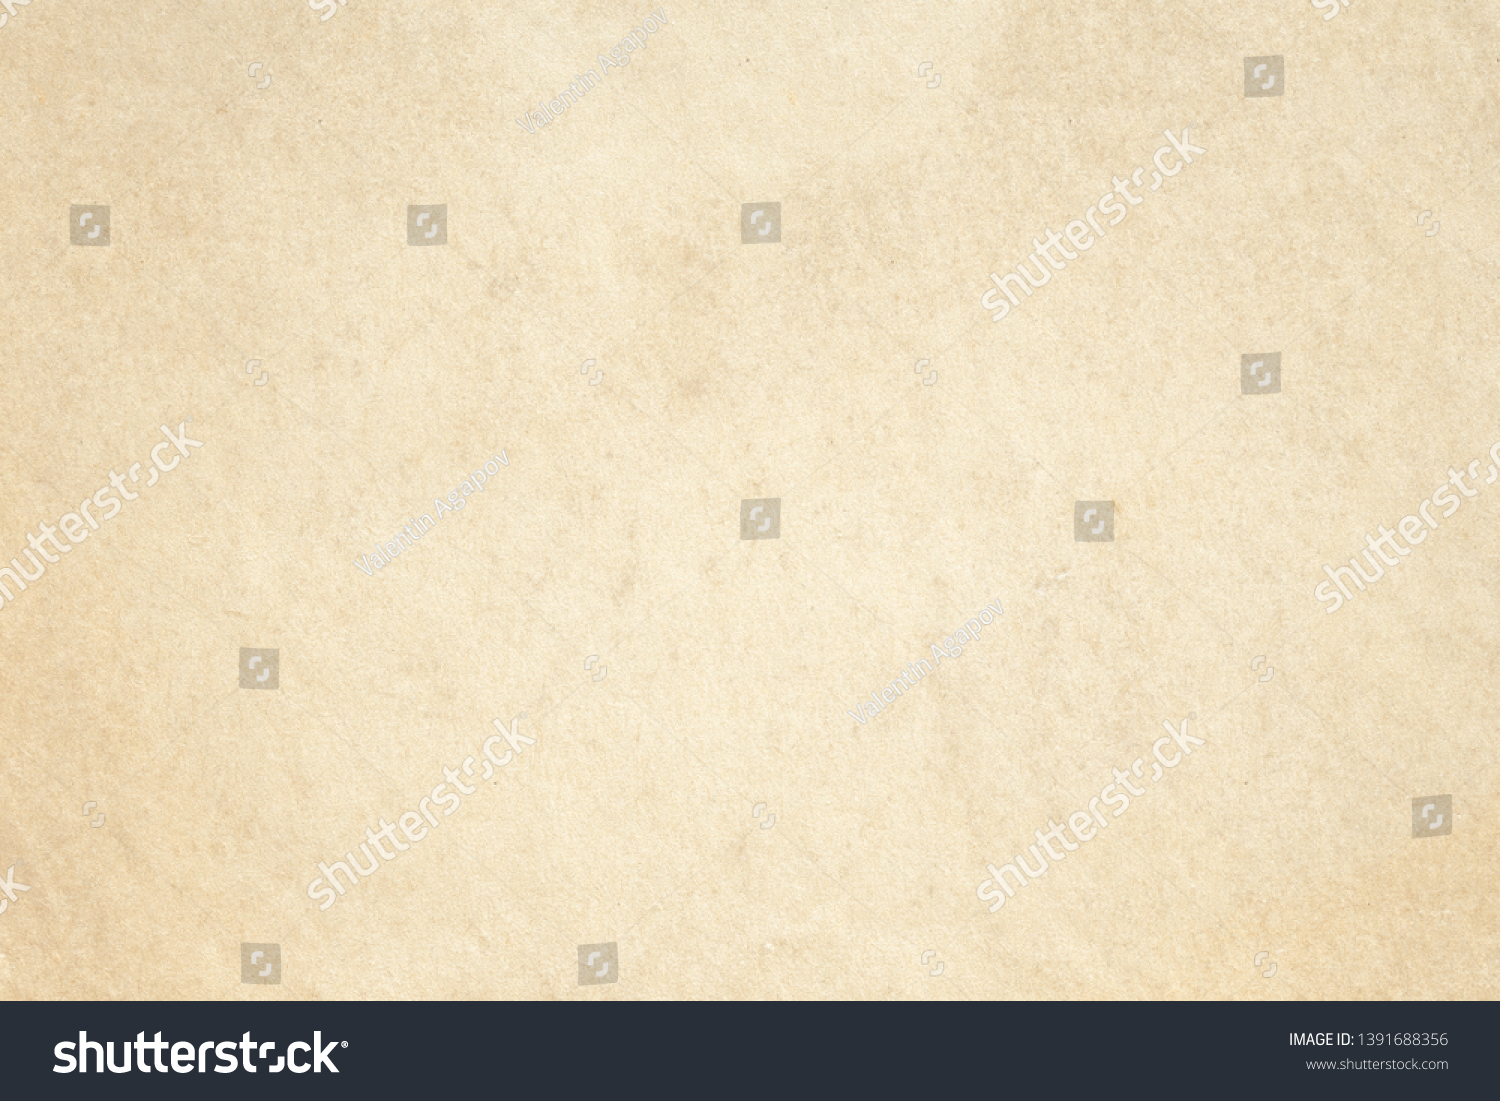 old paper texture, grungy background #1391688356